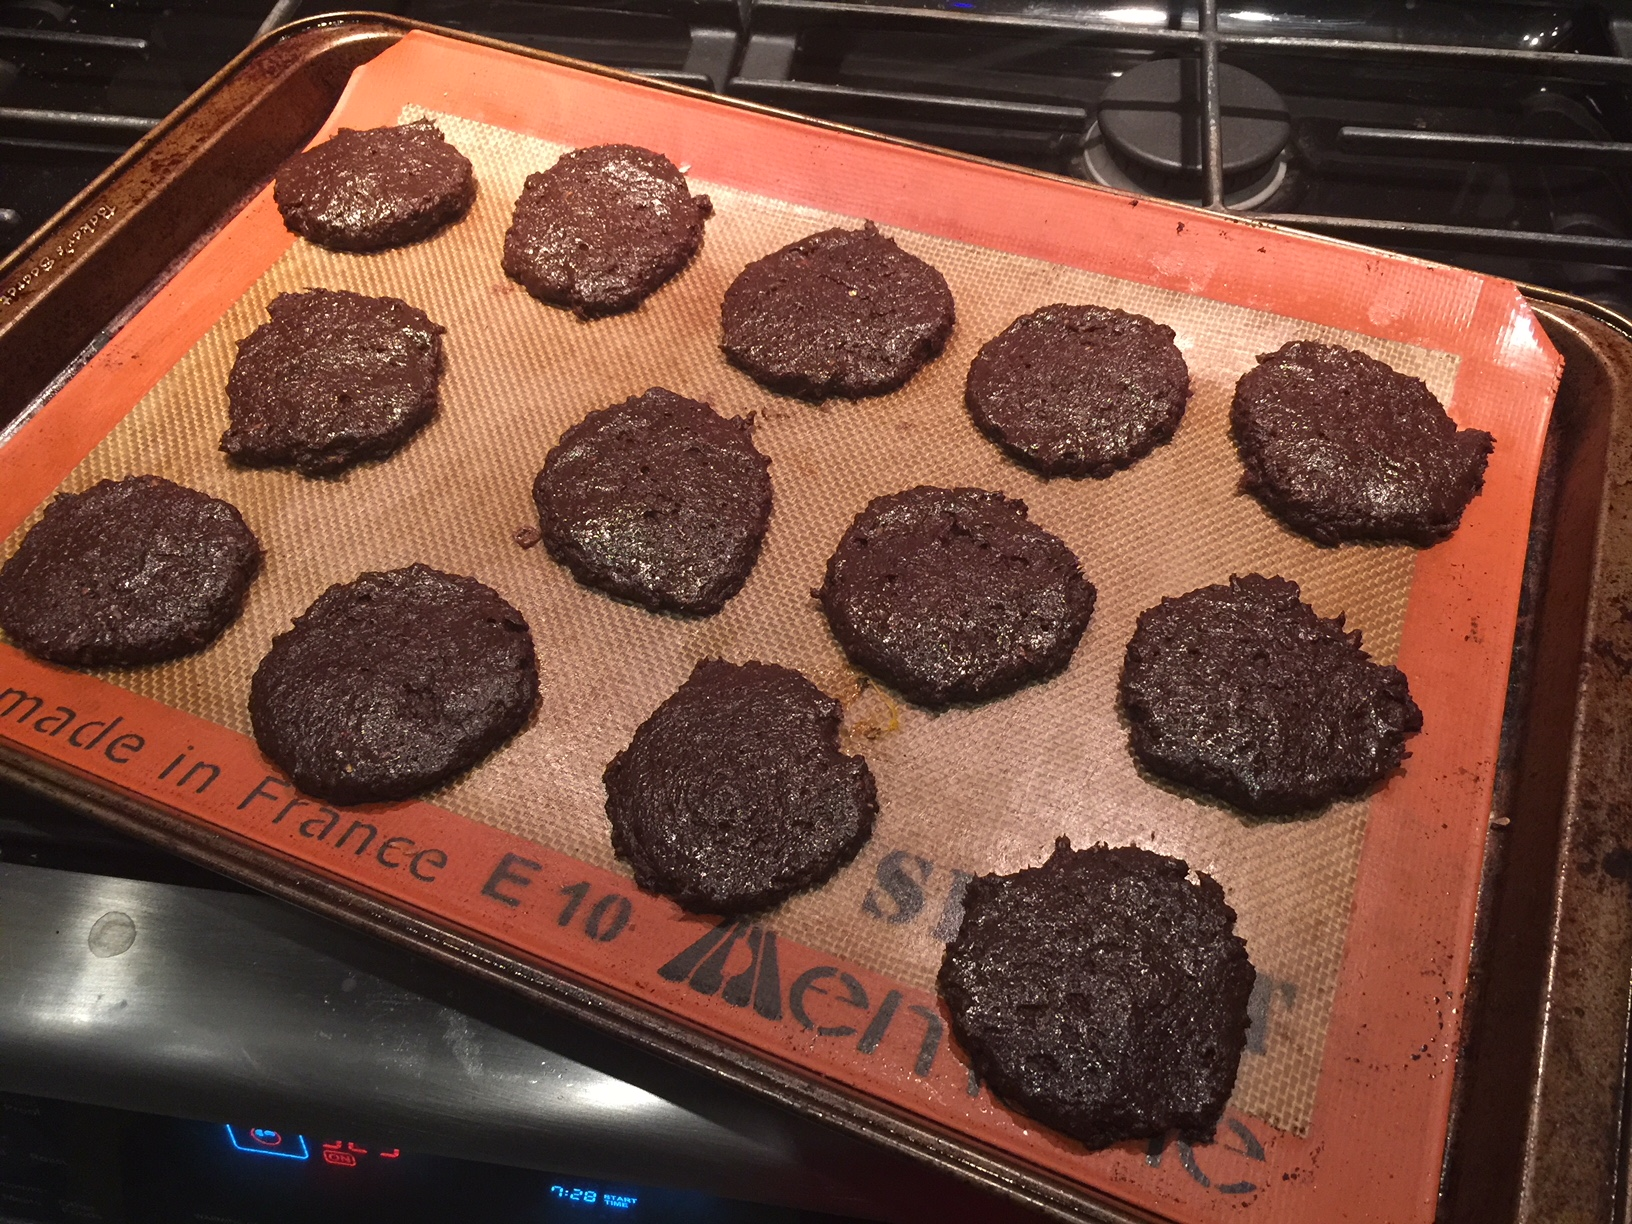 Cookies ready to go in the oven. Hot tip: grease your hands with coconut oil to help shape the cookie dough on the tray.